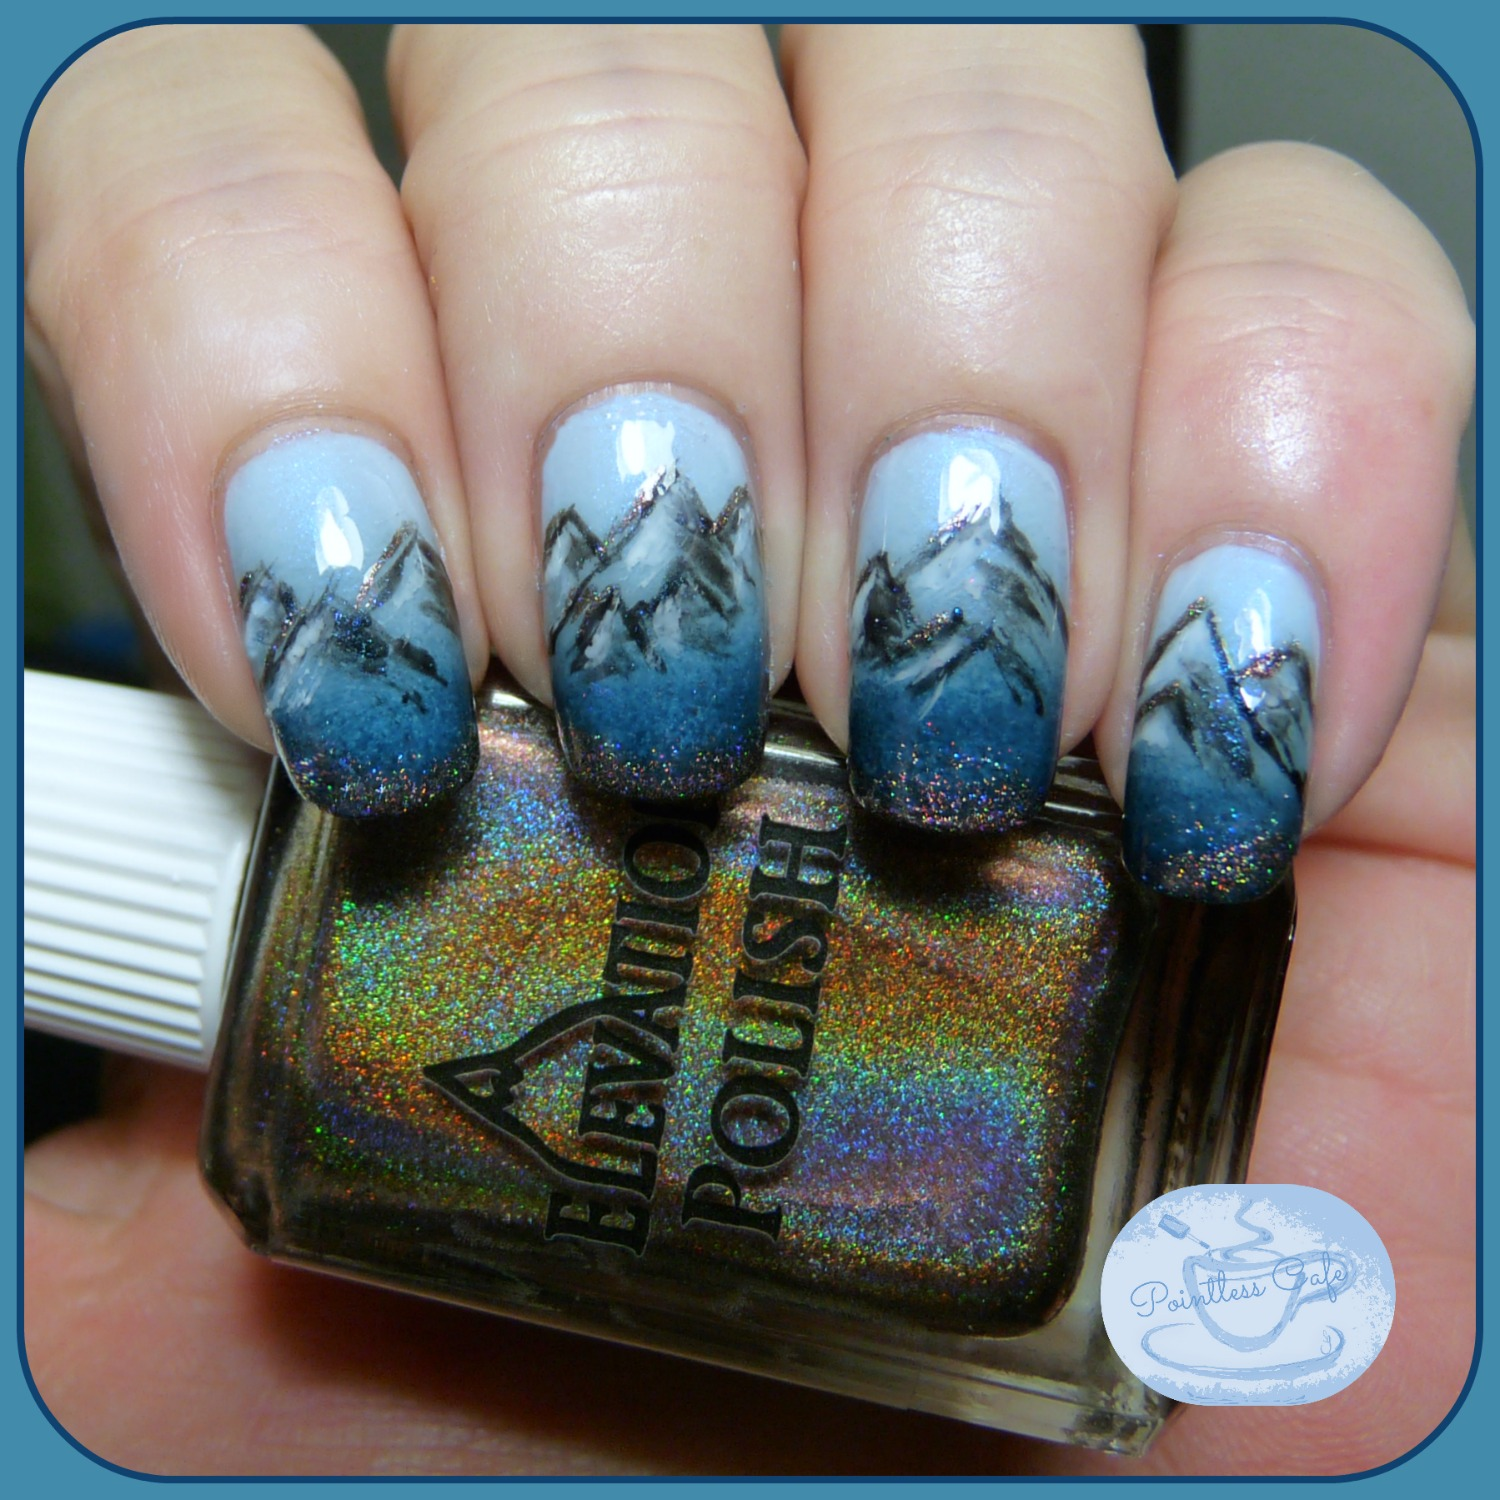 Nail Art 2014 My Top 10 And Top 5 Nail Artists Who Inspired Me In